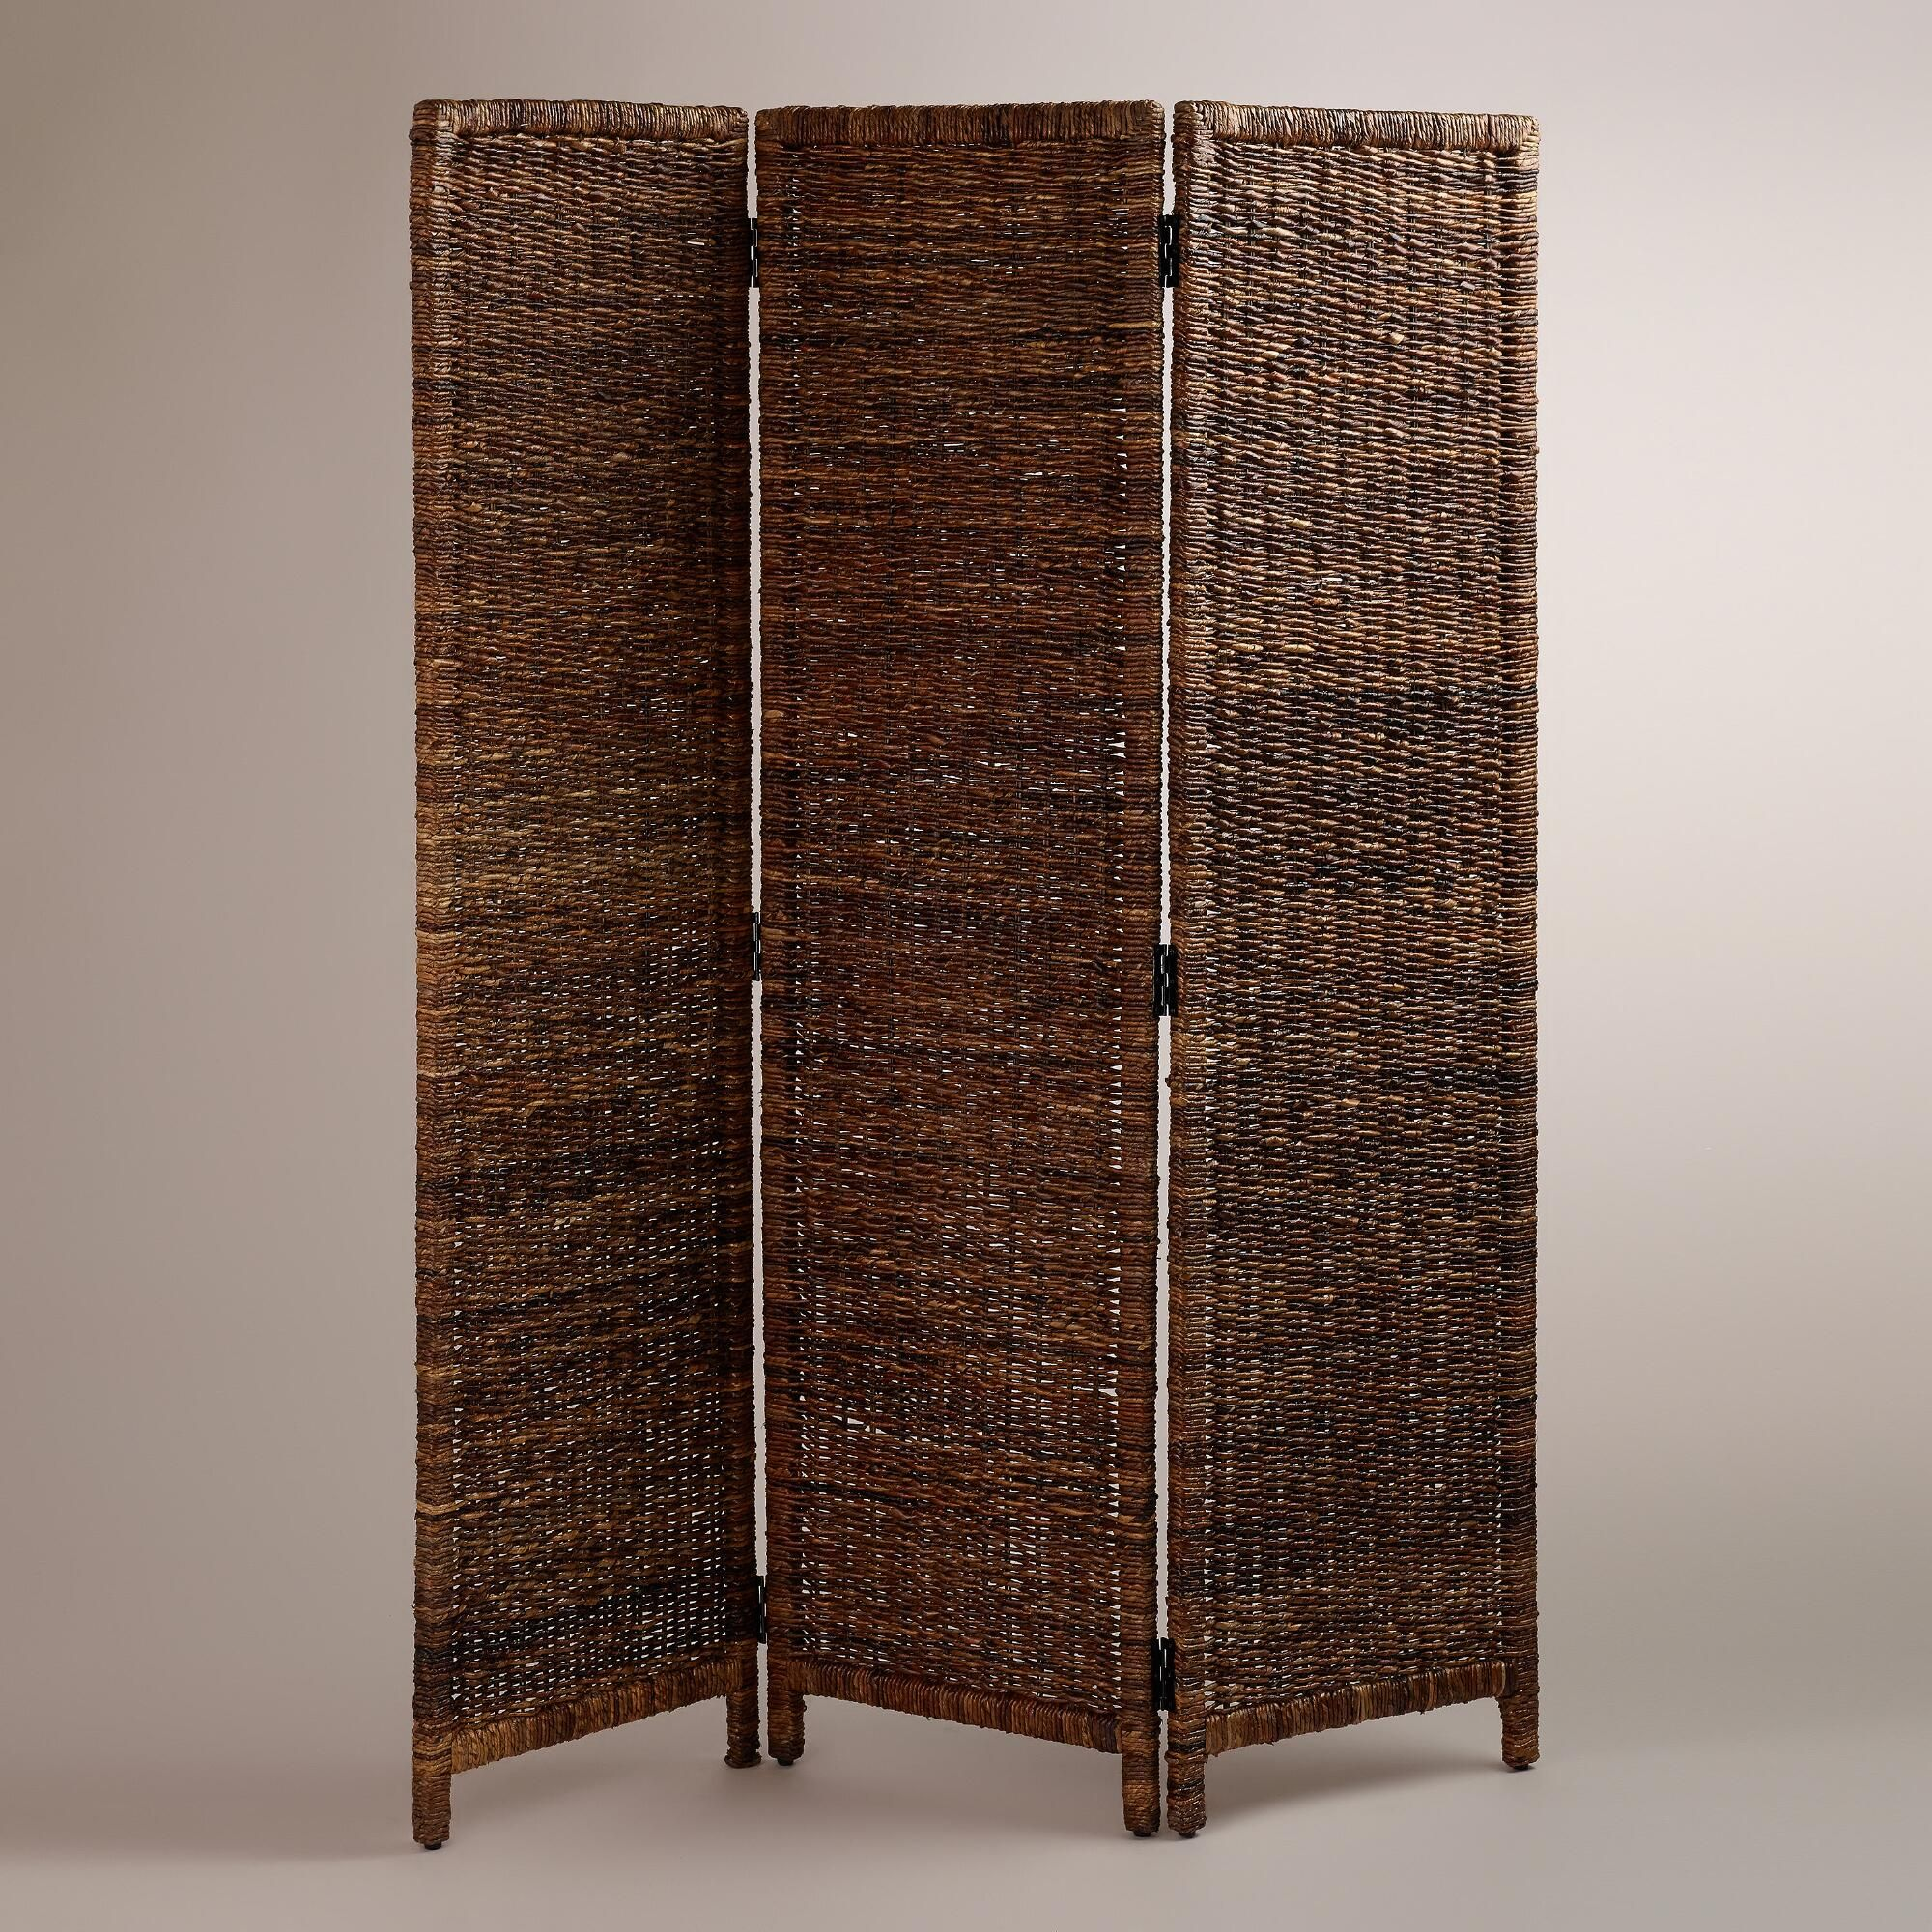 decorative screens for living rooms 10 best room dividers and screens 2018 unique room 23199